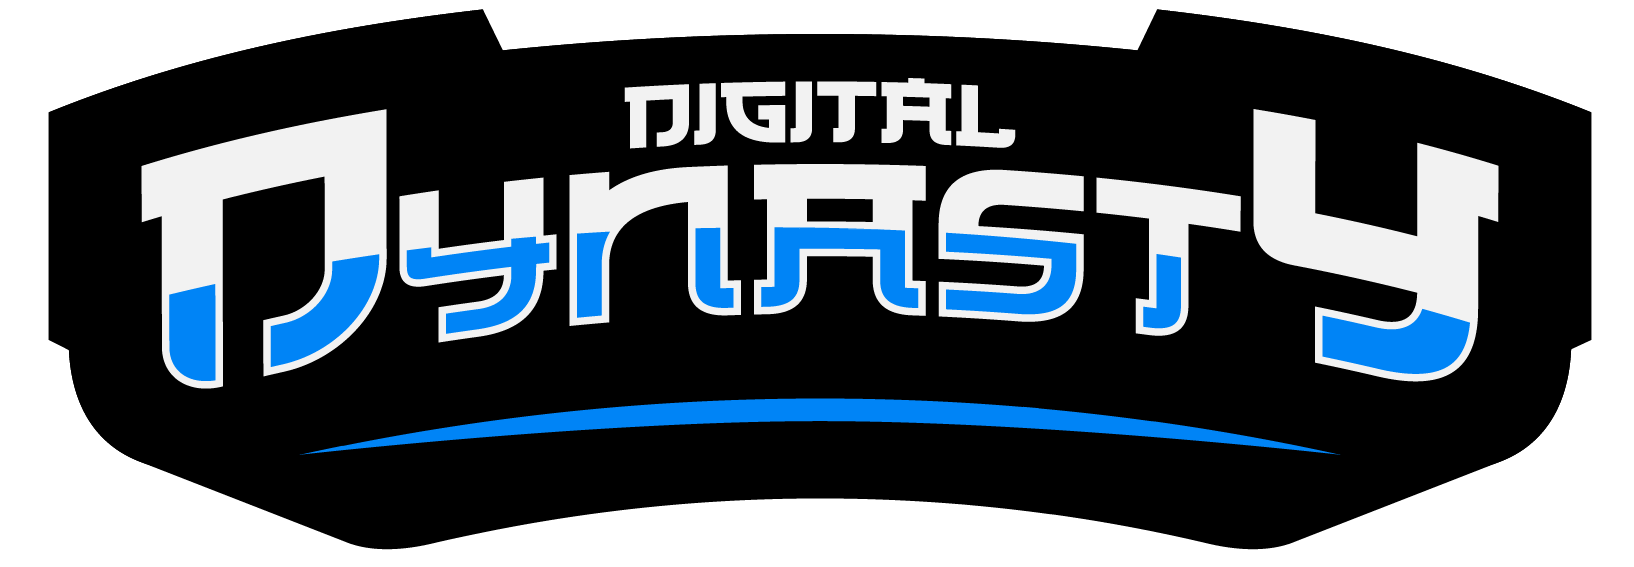 Digital Dynasty